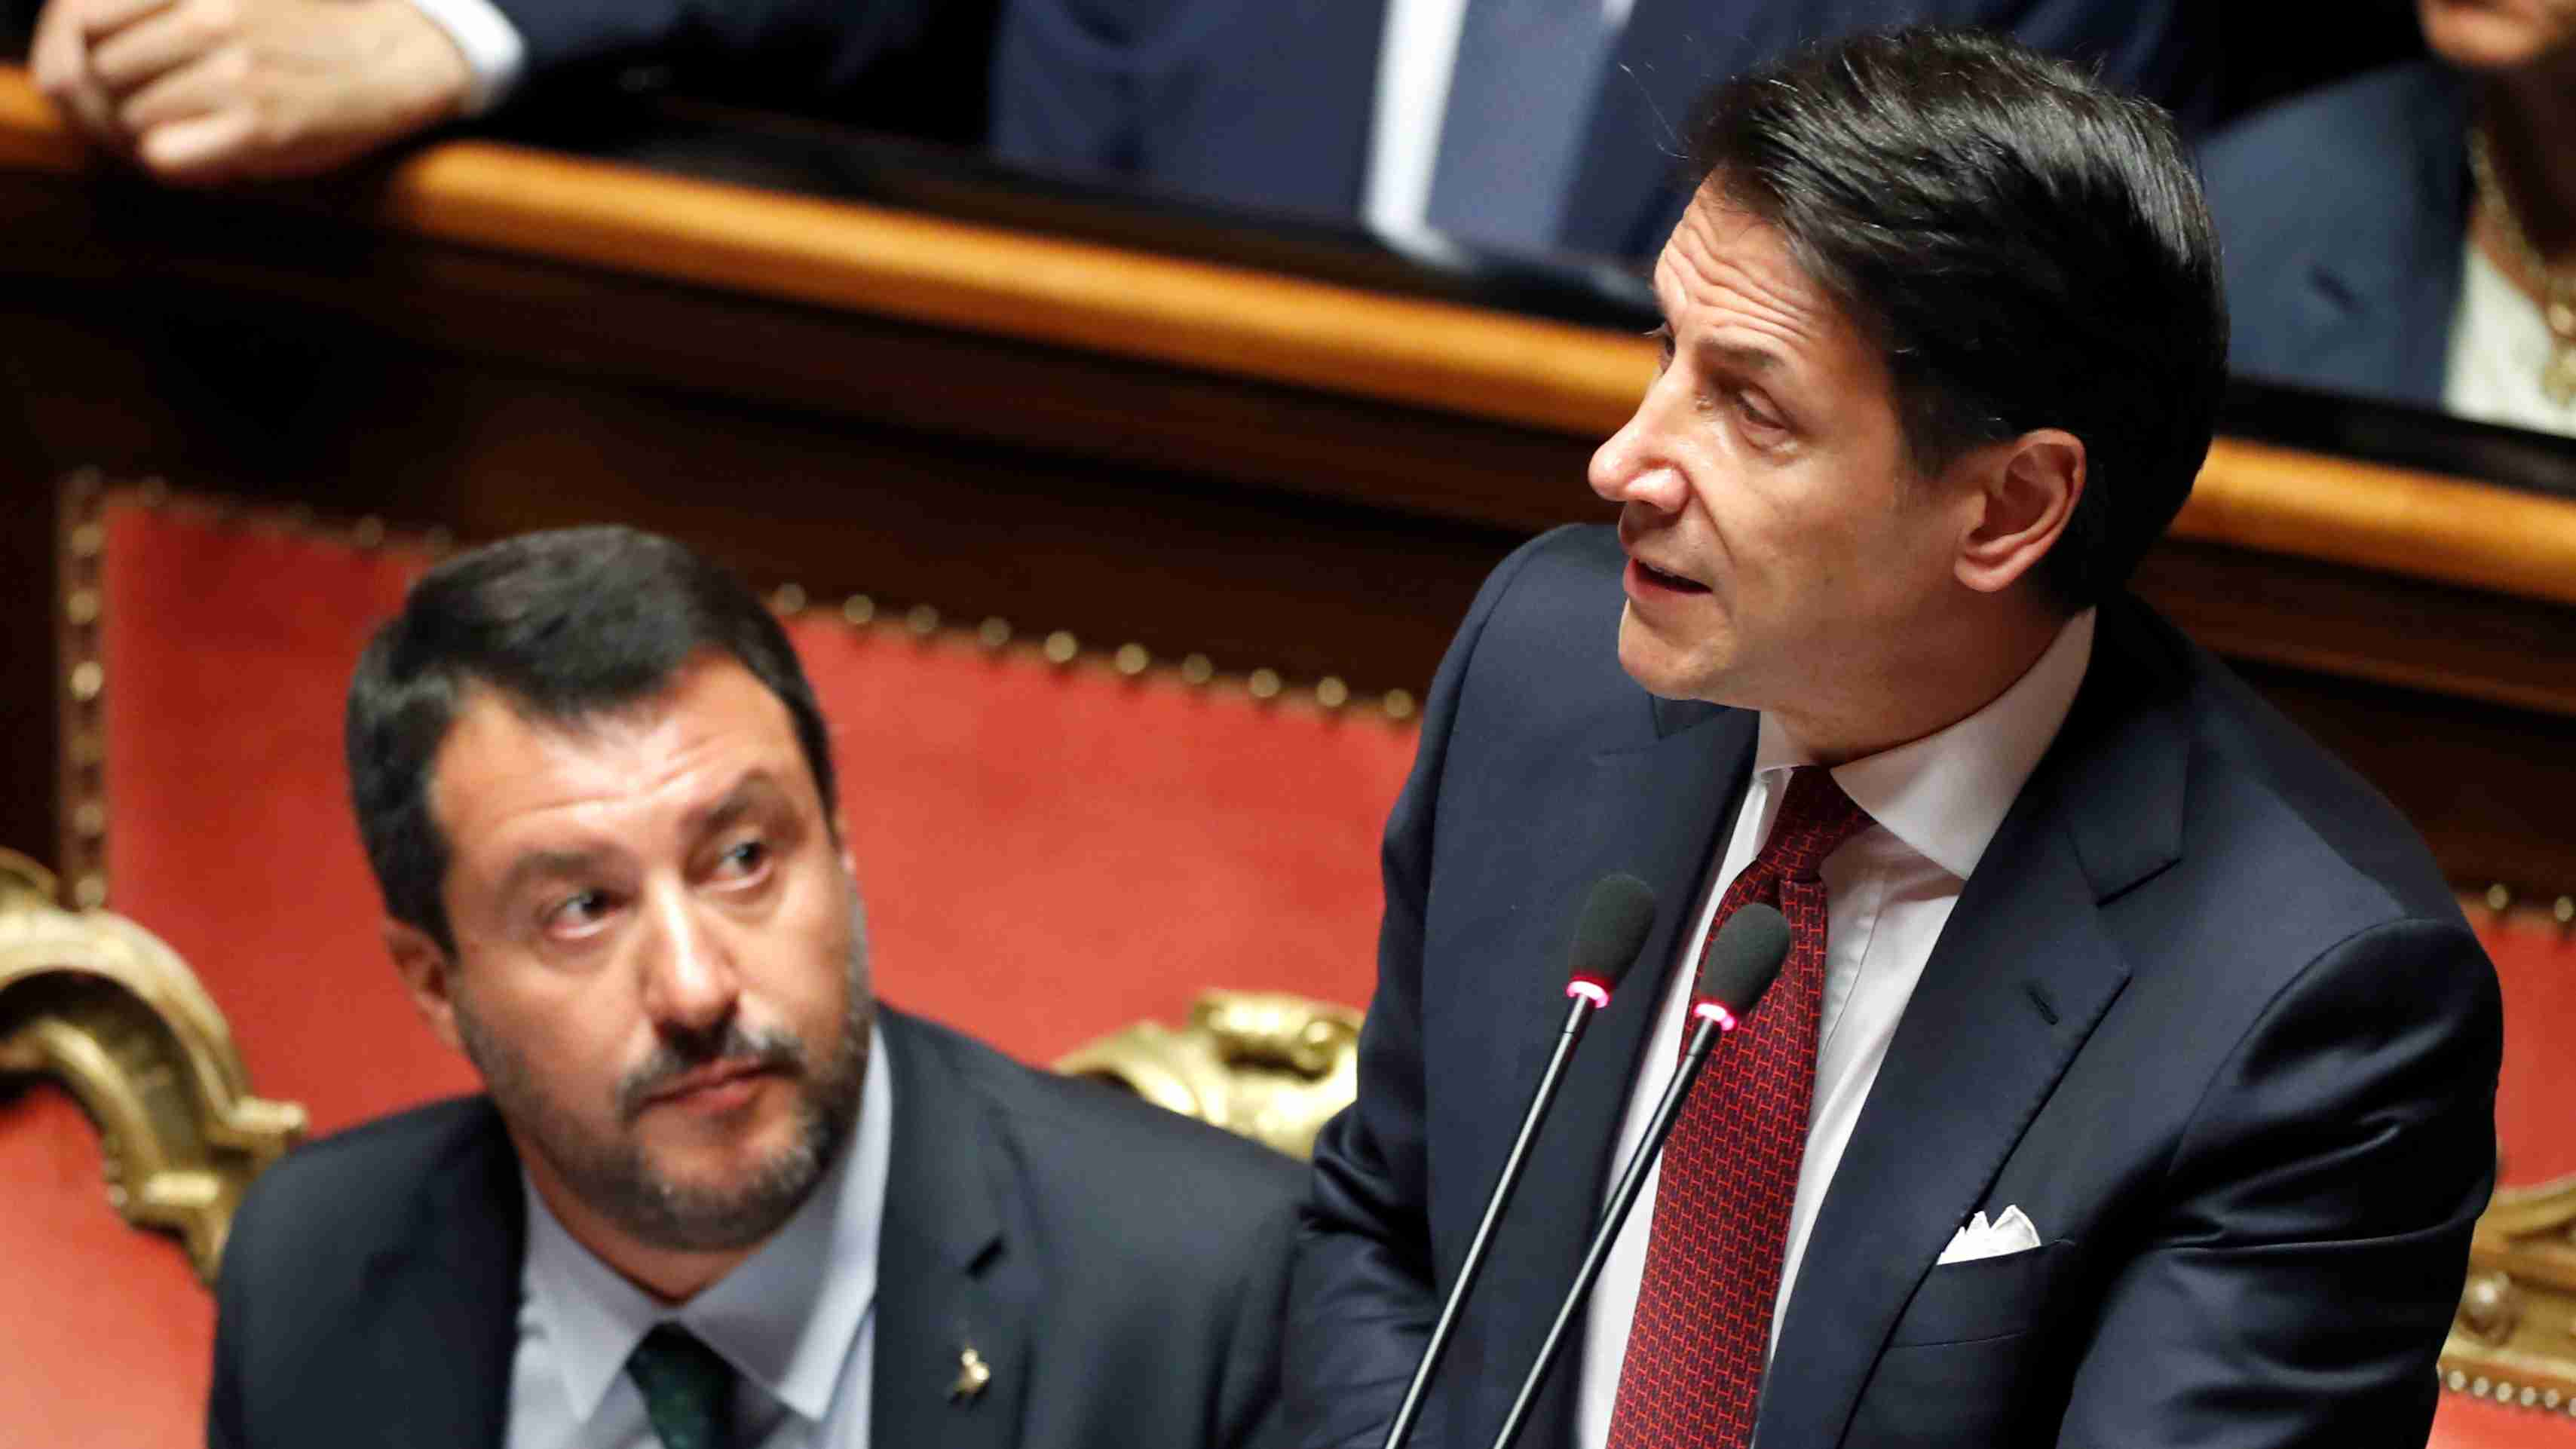 Italian Prime Minister Giuseppe Conte, next to Italian Deputy PM Matteo Salvini, addresses the upper house of parliament over the ongoing government crisis, in Rome, Italy August 20, 2019. REUTERS/Yara Nardi - RC17338CA110